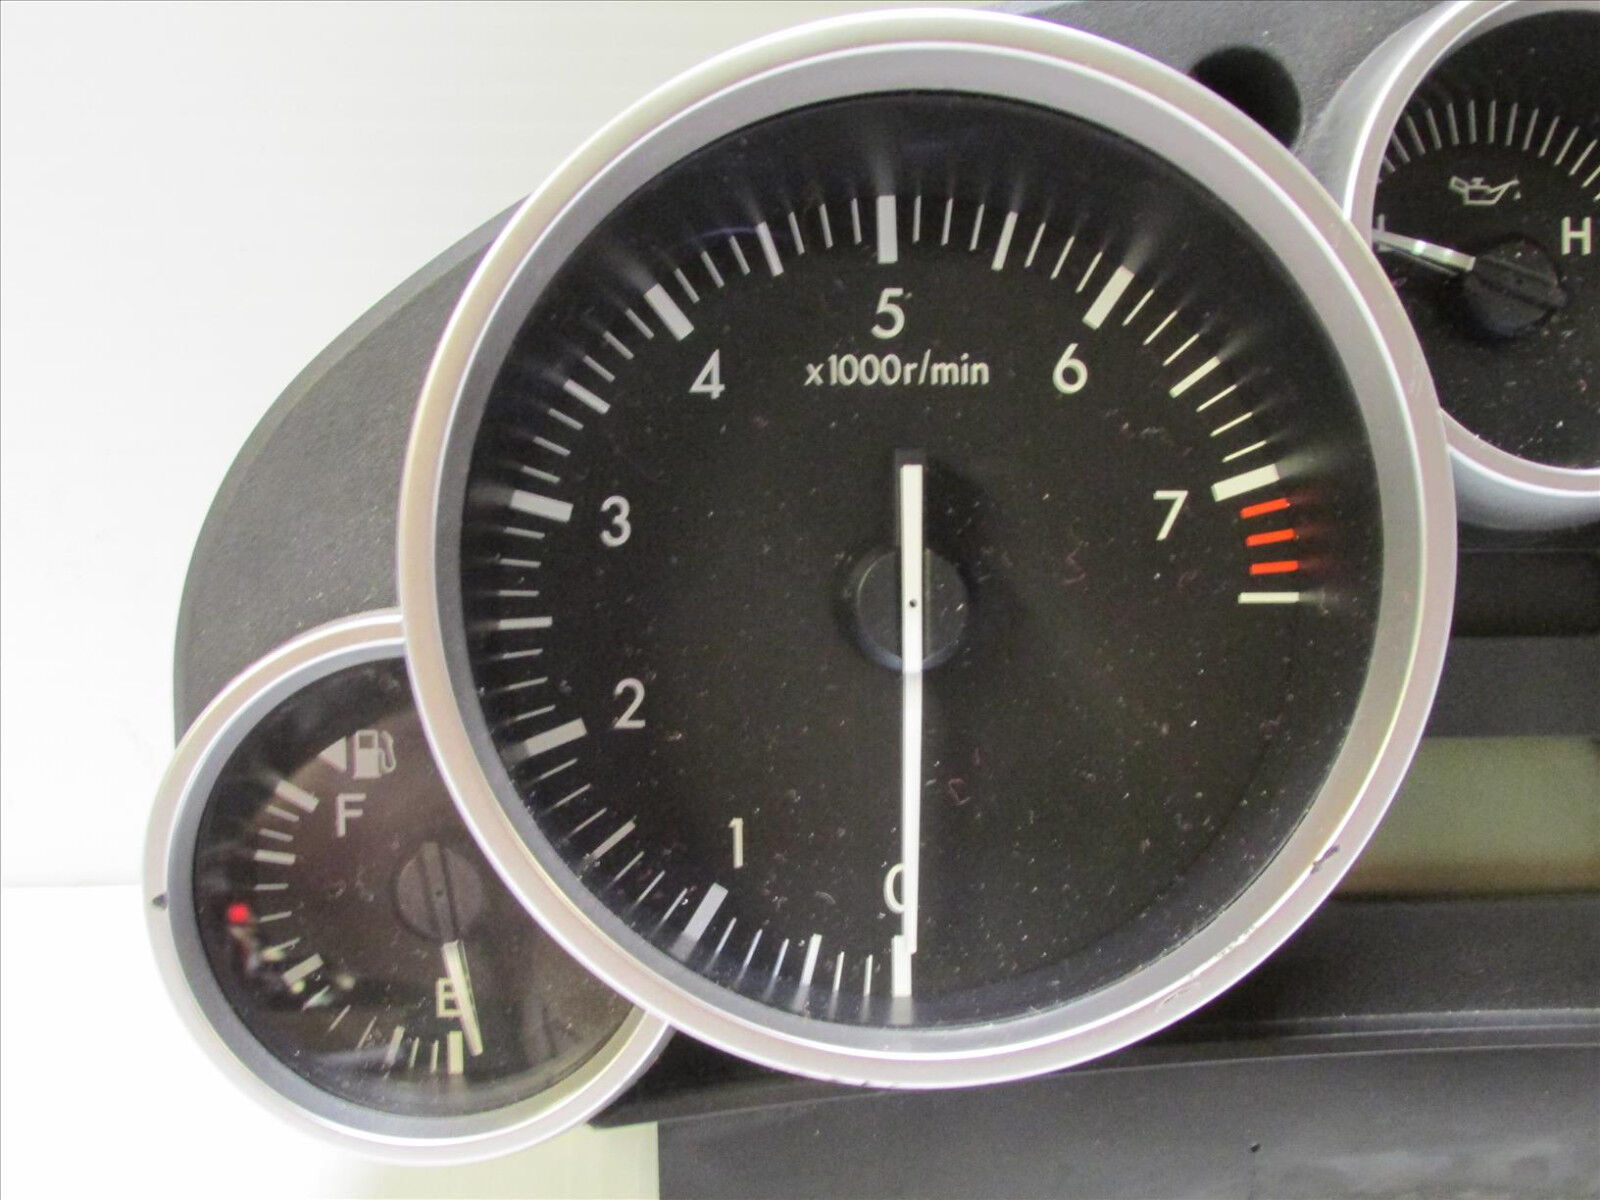 Buy Used Instrument Clusters from Top-Rated Salvage Yards